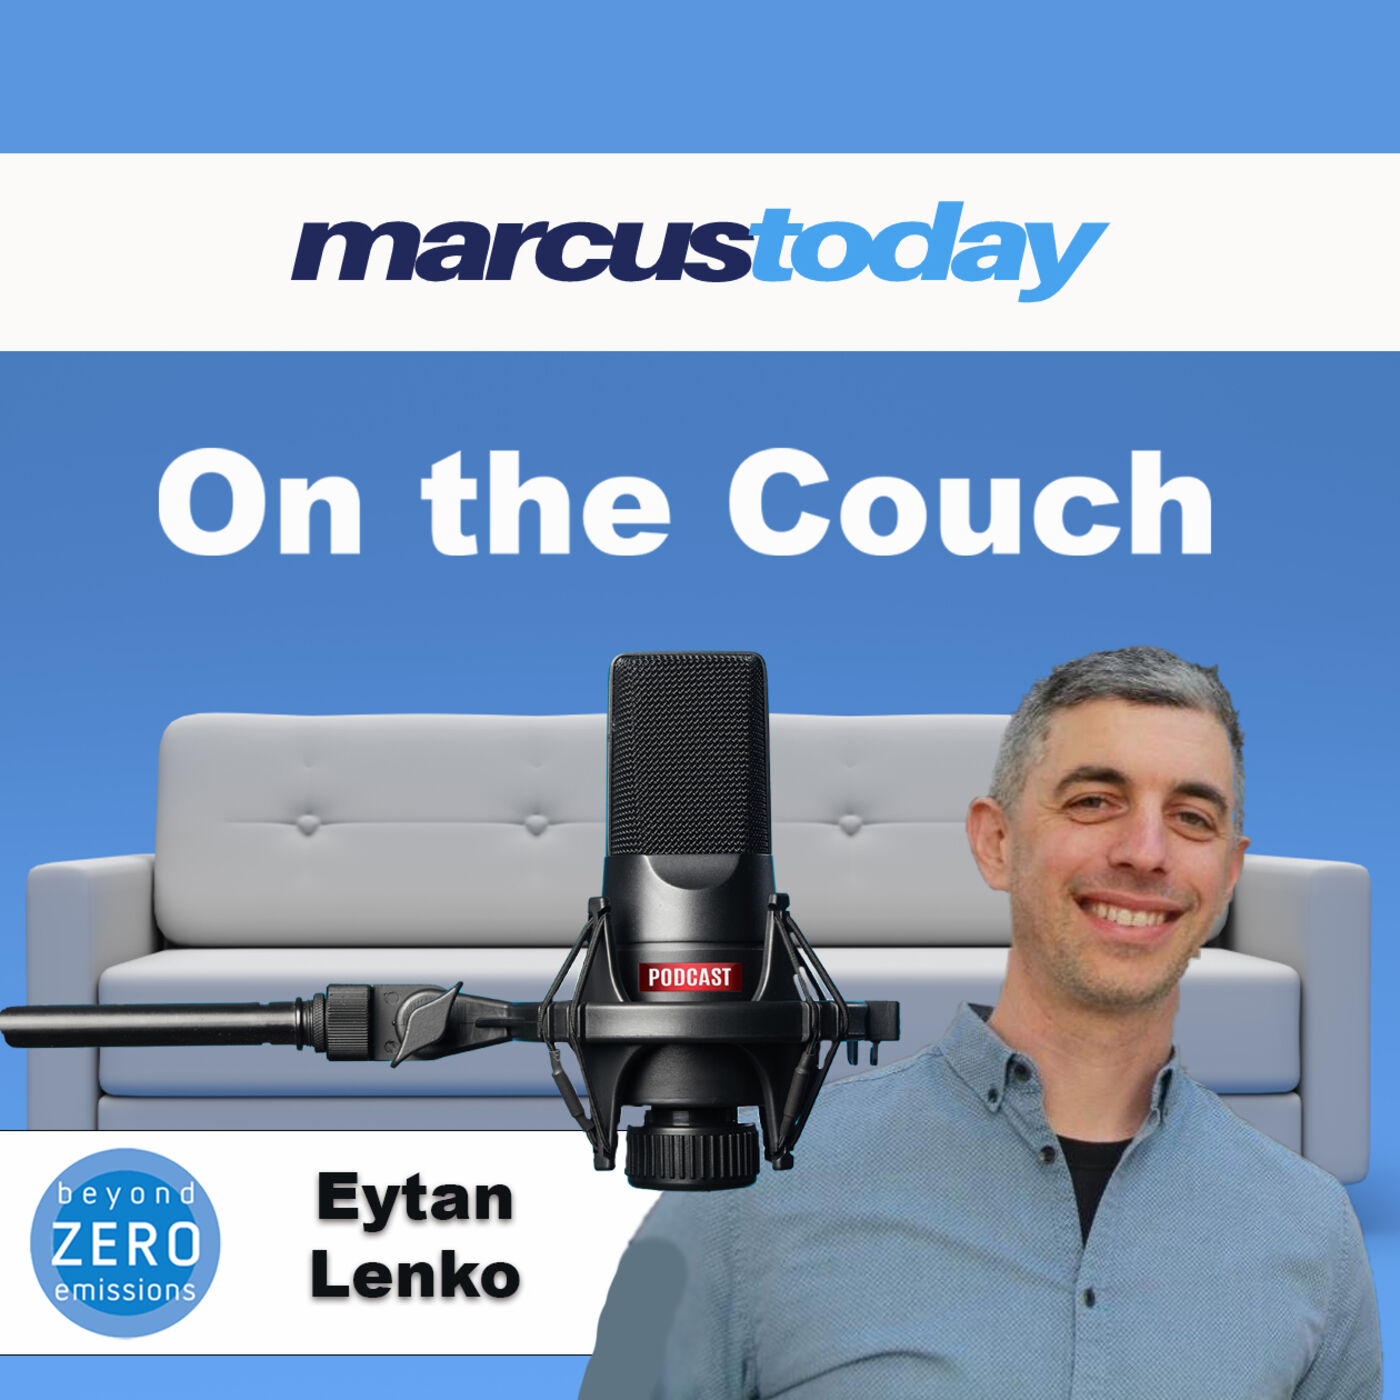 On the Couch with Henry Jennings and Eytan Lenko